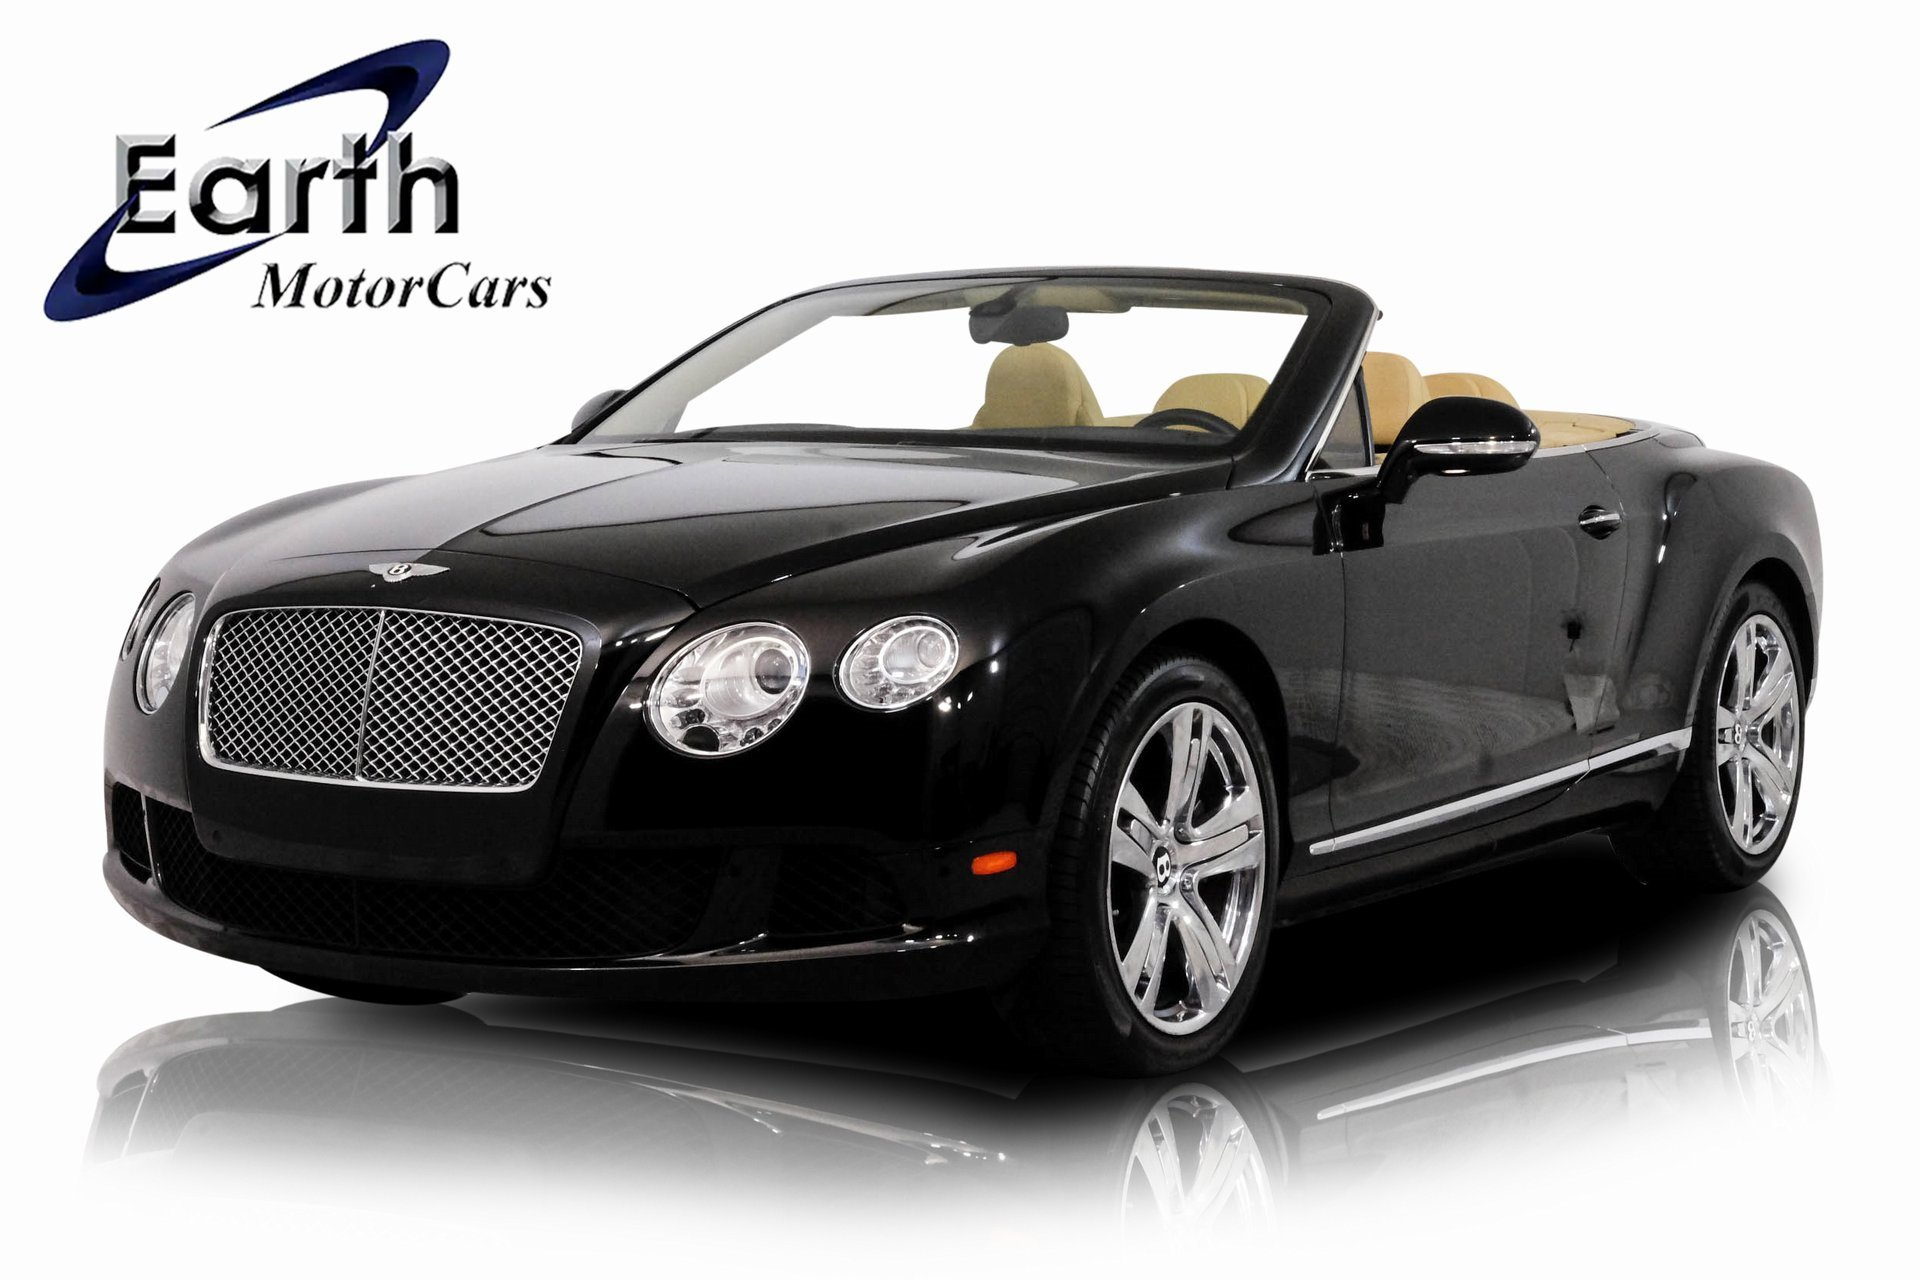 2013 Bentley Continental GT Convertible image